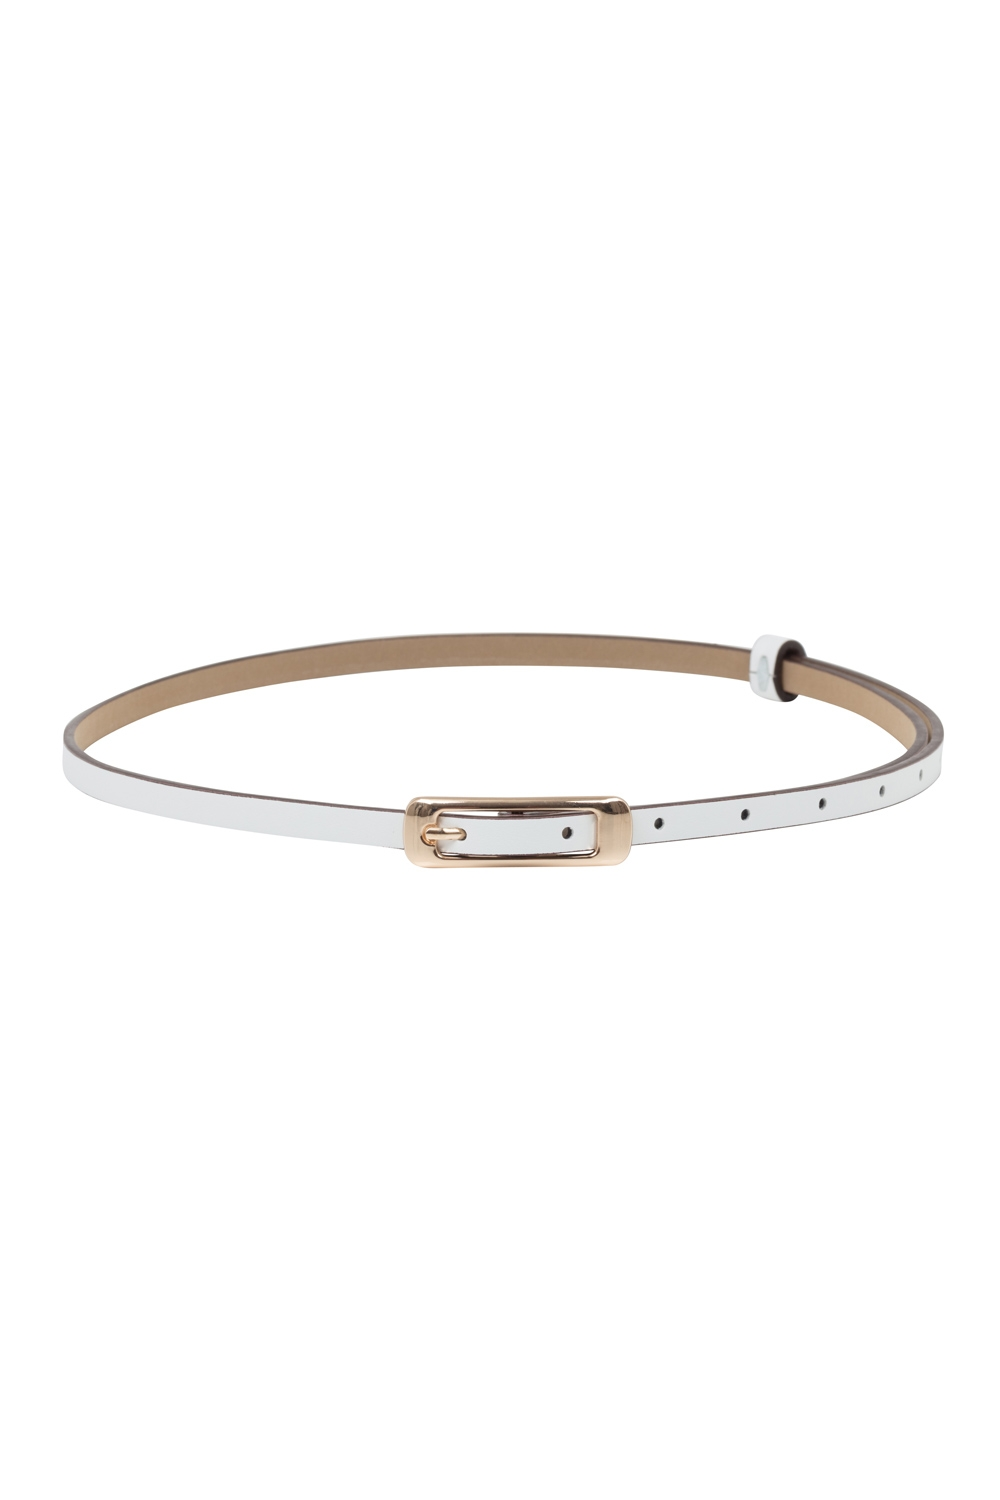 Slim Belt With Gold Buckle White